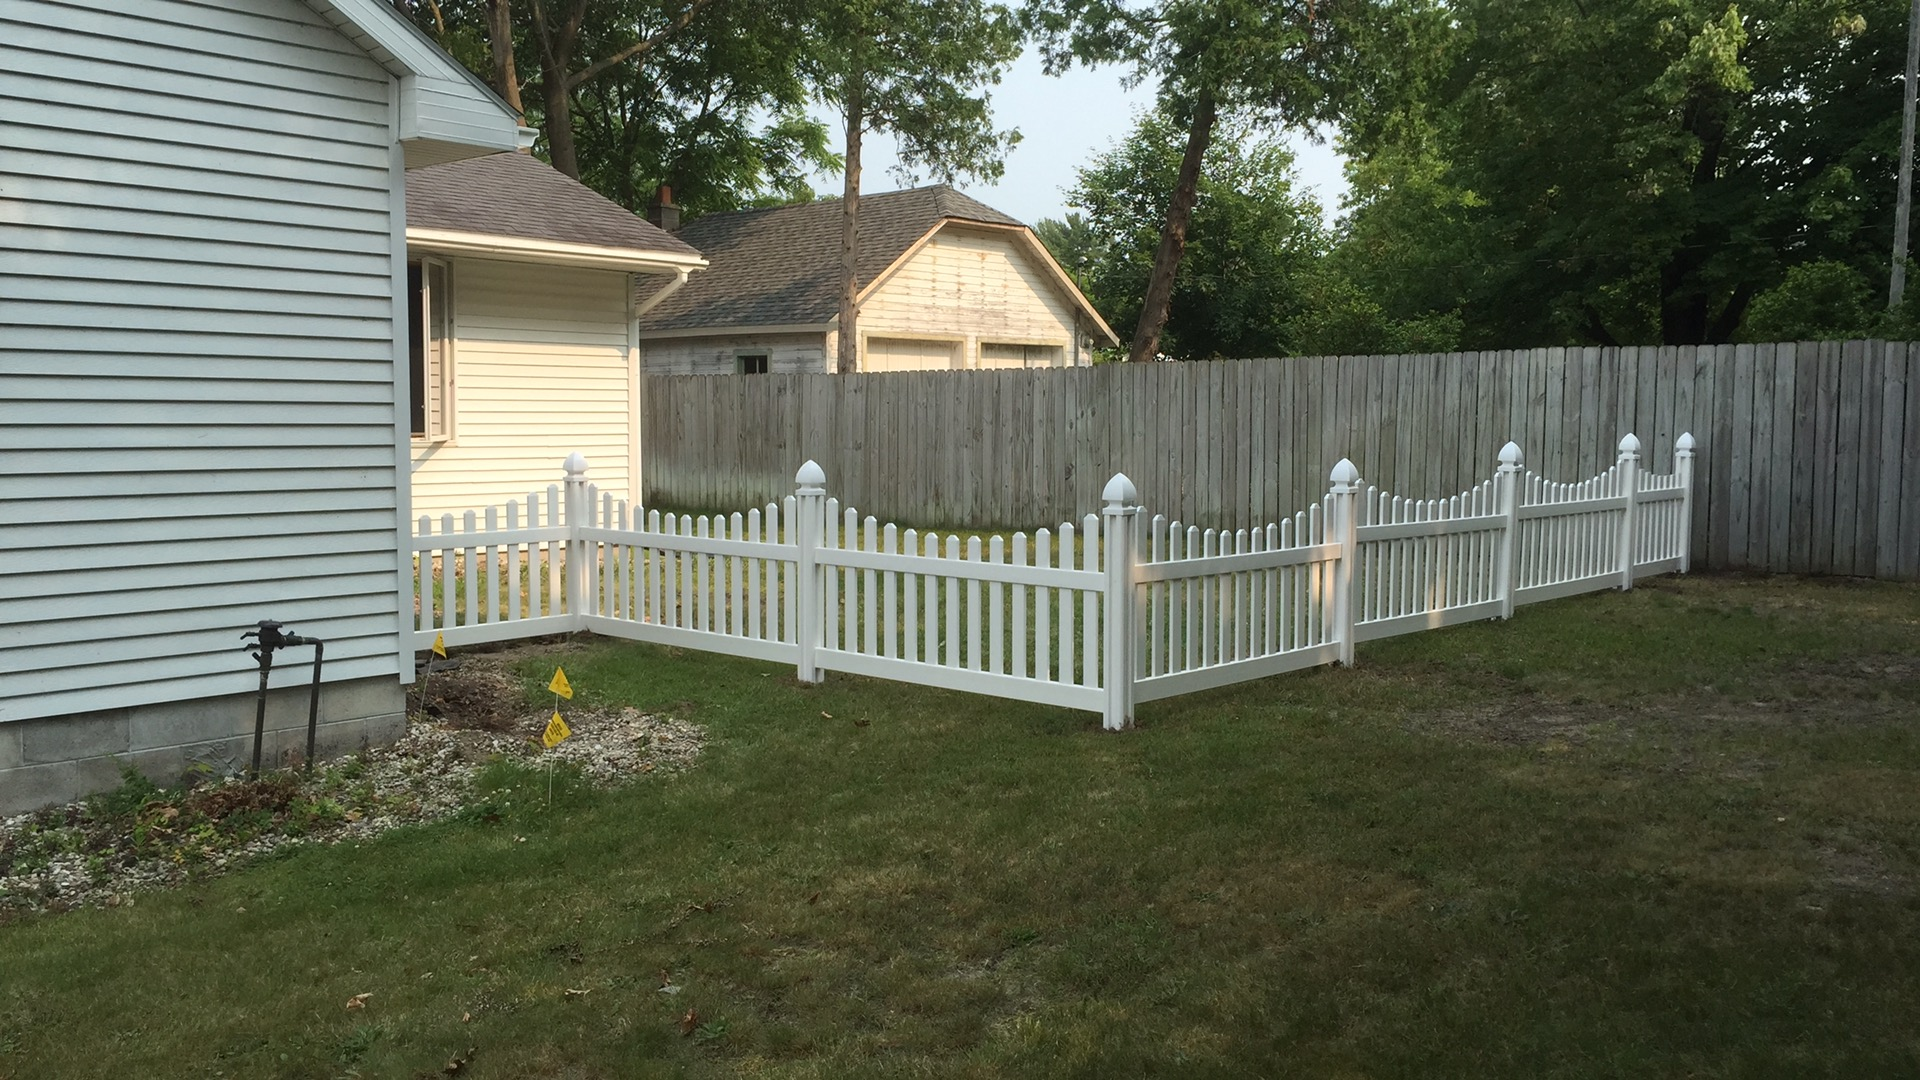 Mark shortened his Jiminy Picket vinyl fence and cut the pickets in a concave style (directions are included in the instructions).